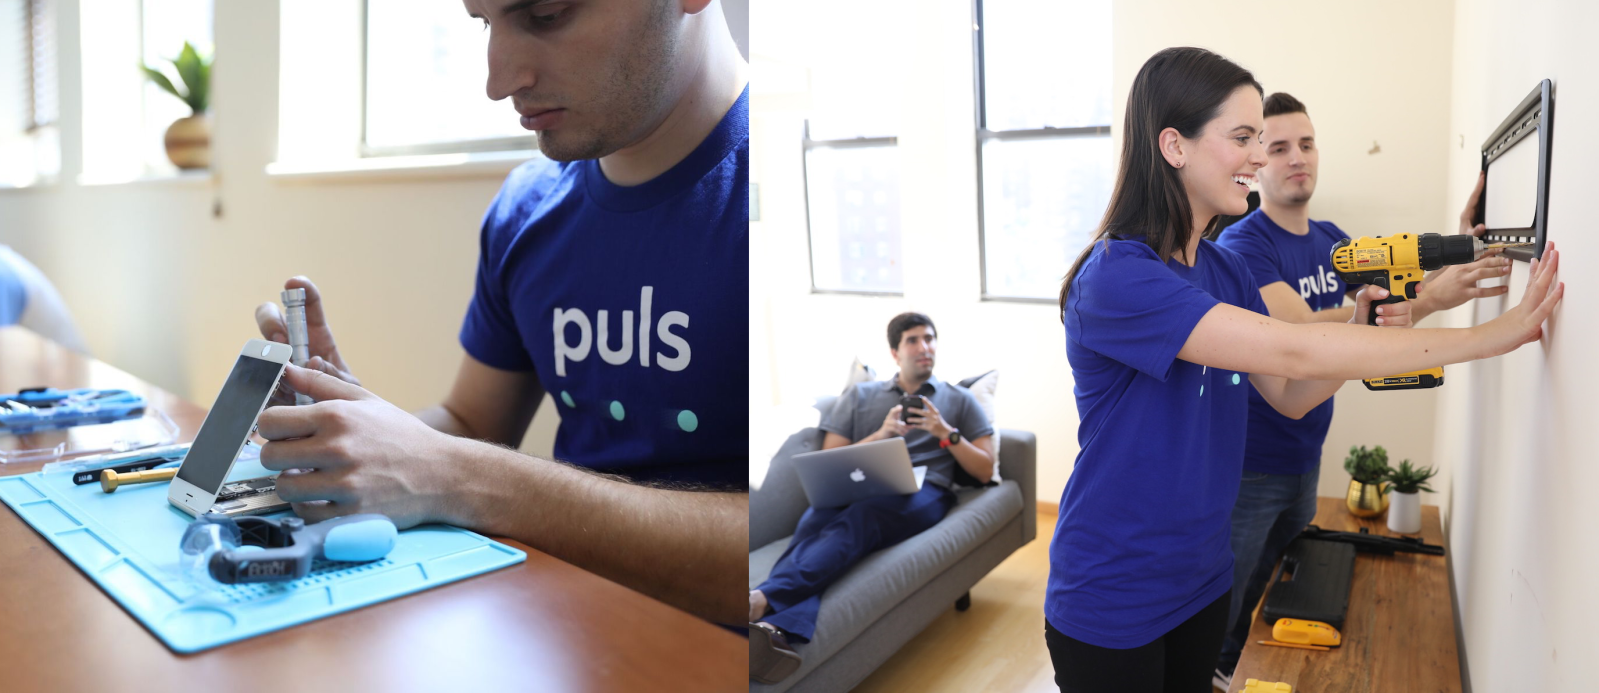 Puls brings technicians to your door for in-home iPhone repairs & more